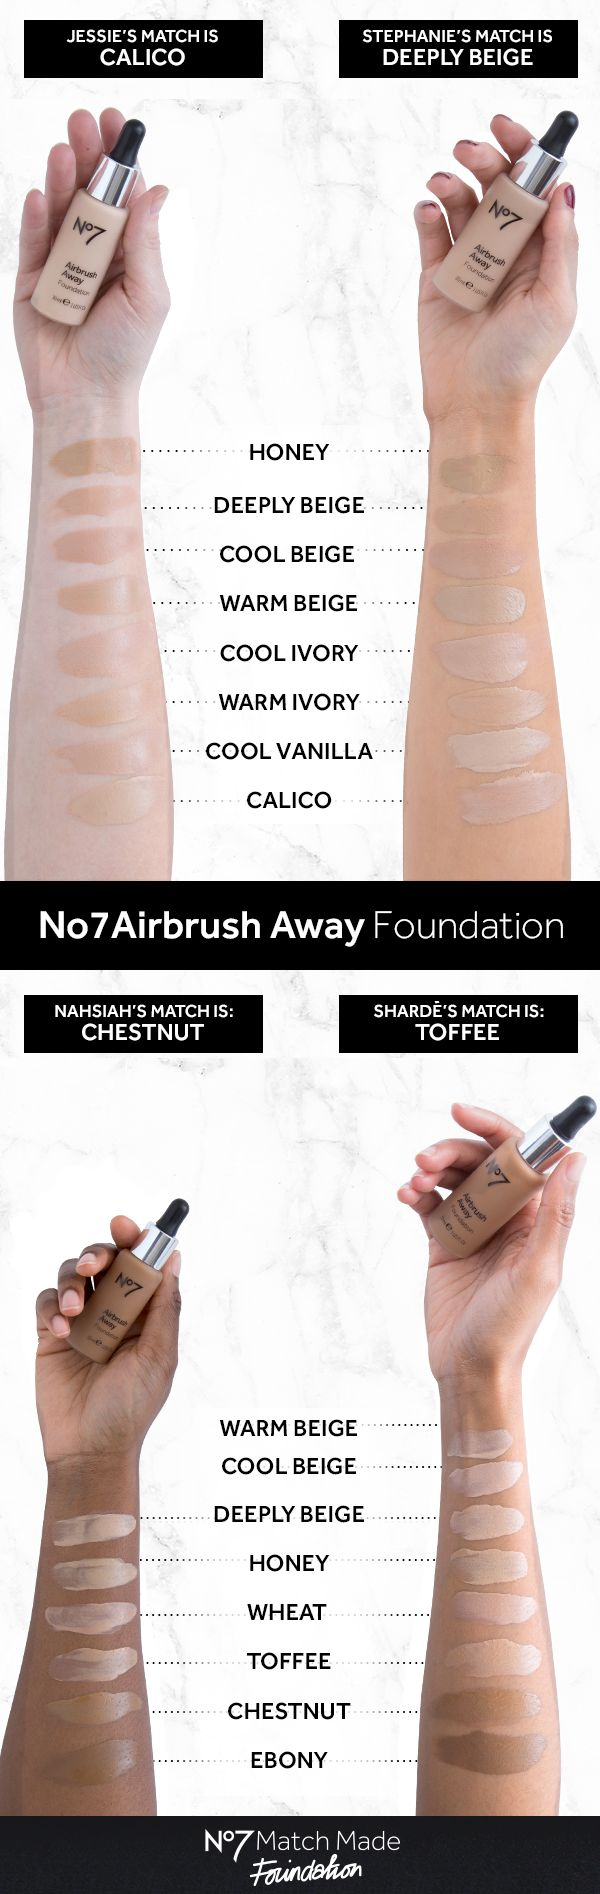 No7 Airbrush Away foundation contains advanced blurring technology to create a glowing finish, hiding the appearance of fine lines and pores. The remarkably light texture glides on with ease, leaving the skin looking even and natural. Get ready for your close-up!